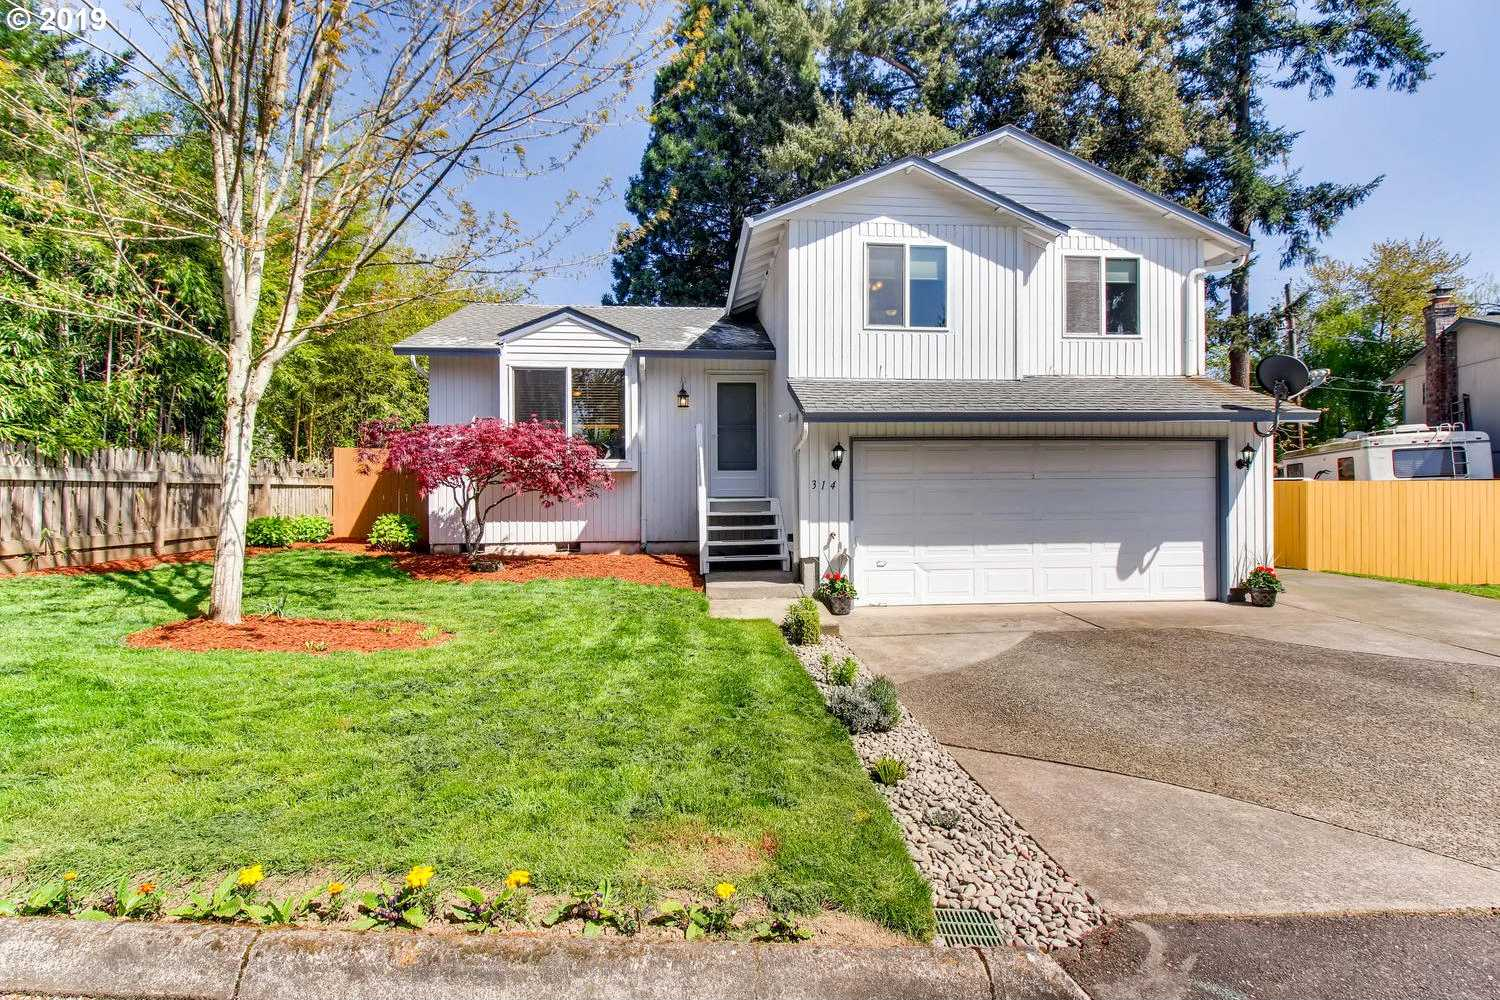 $337,700 - 3Br/2Ba -  for Sale in Glenfair, Portland